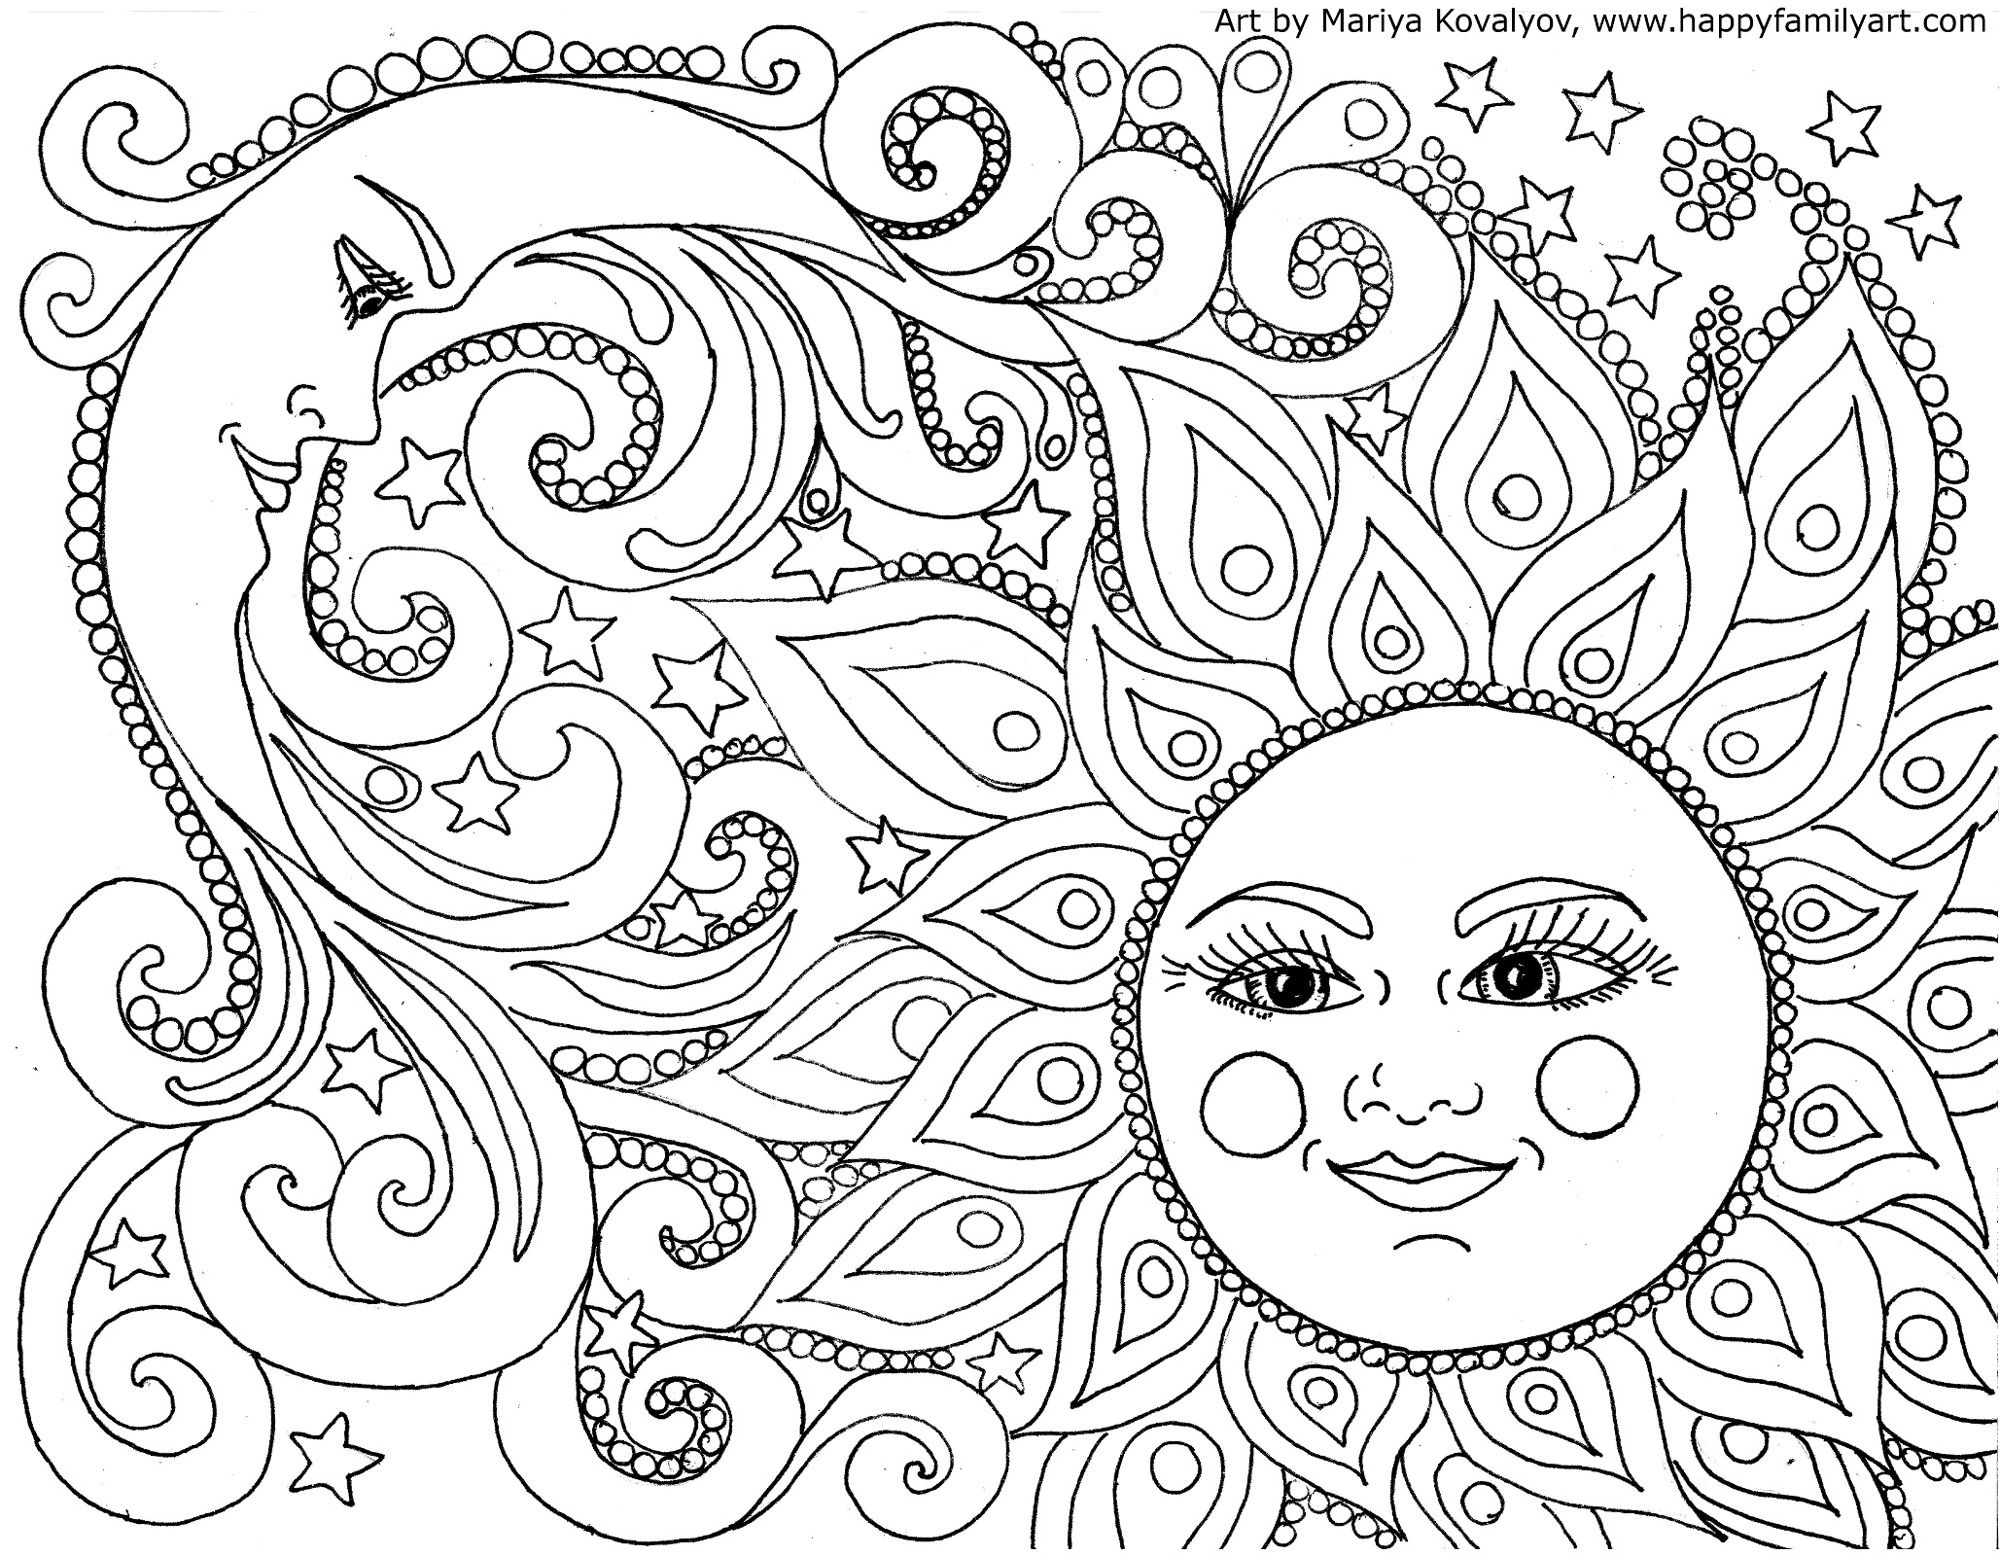 Free coloring pages for adults -